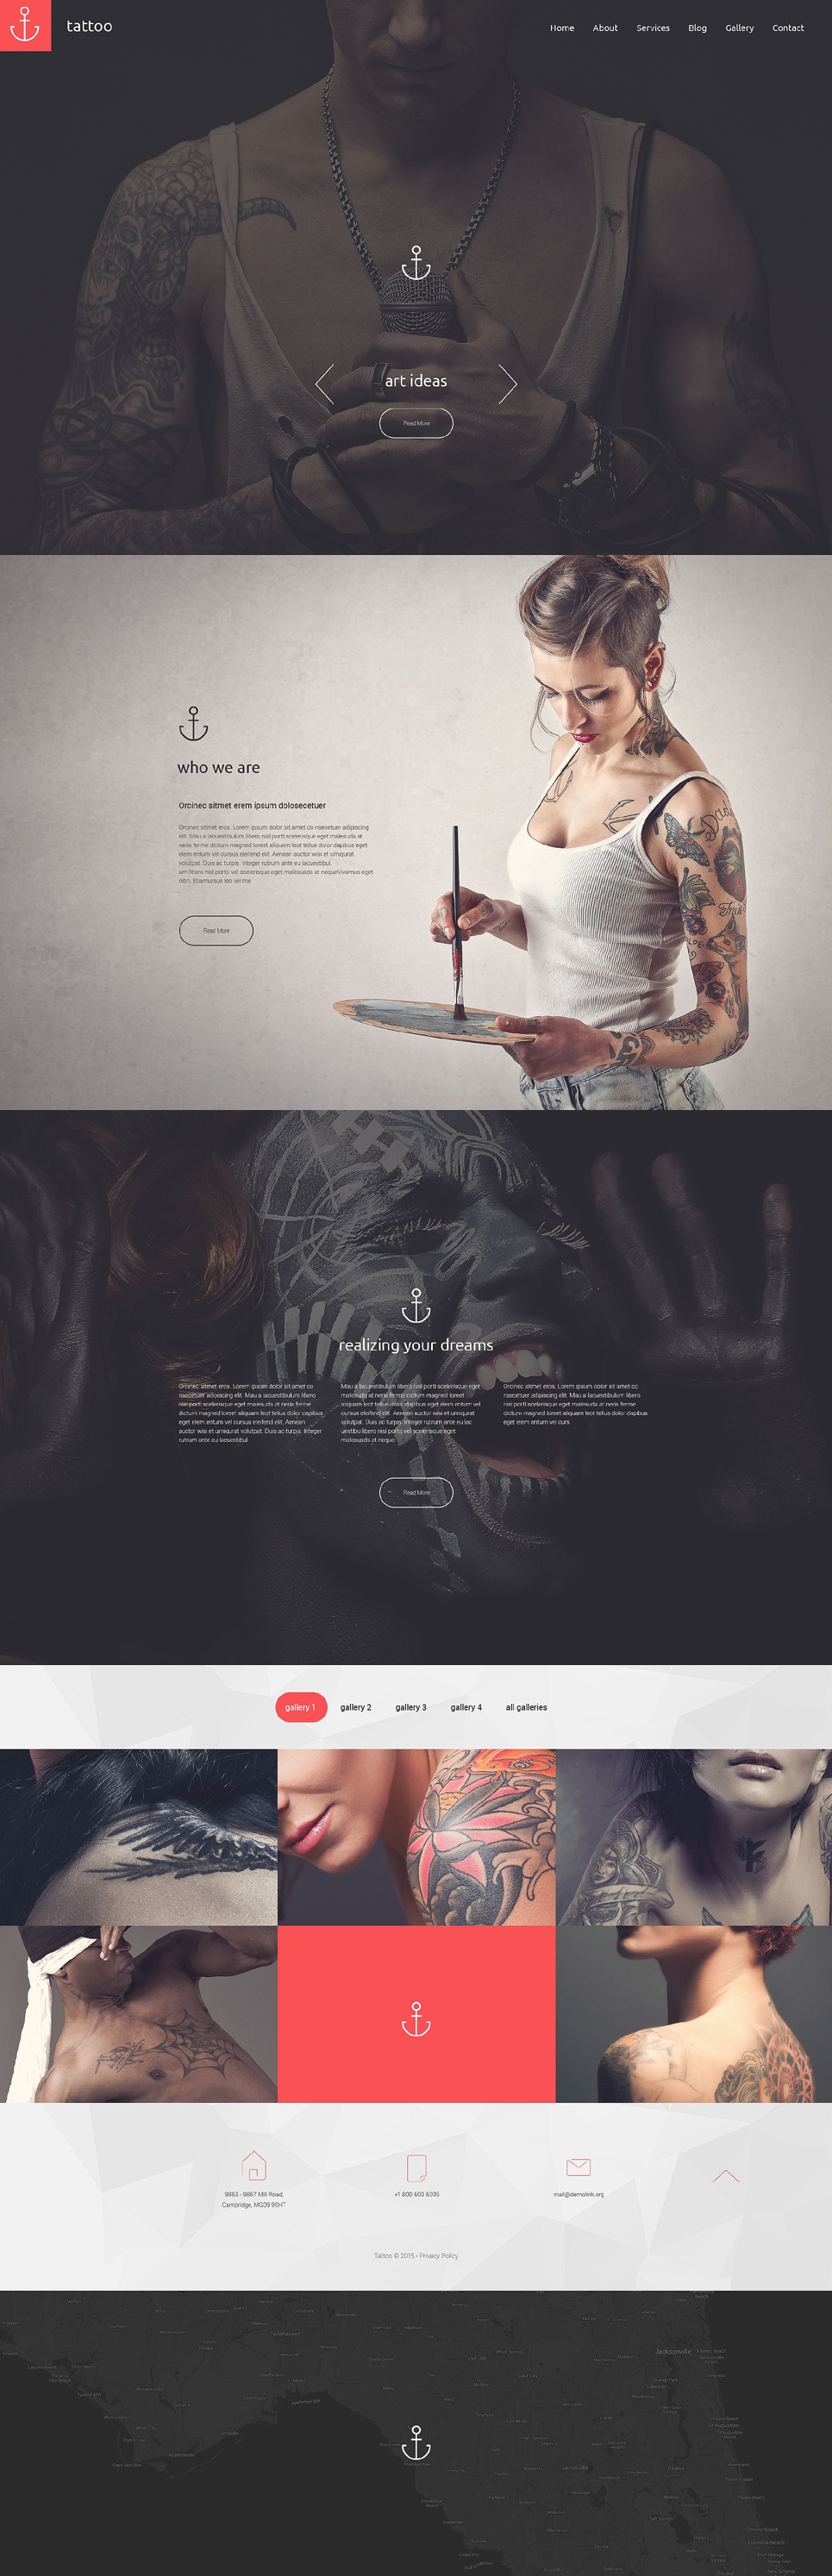 Tattoo Drupal Template